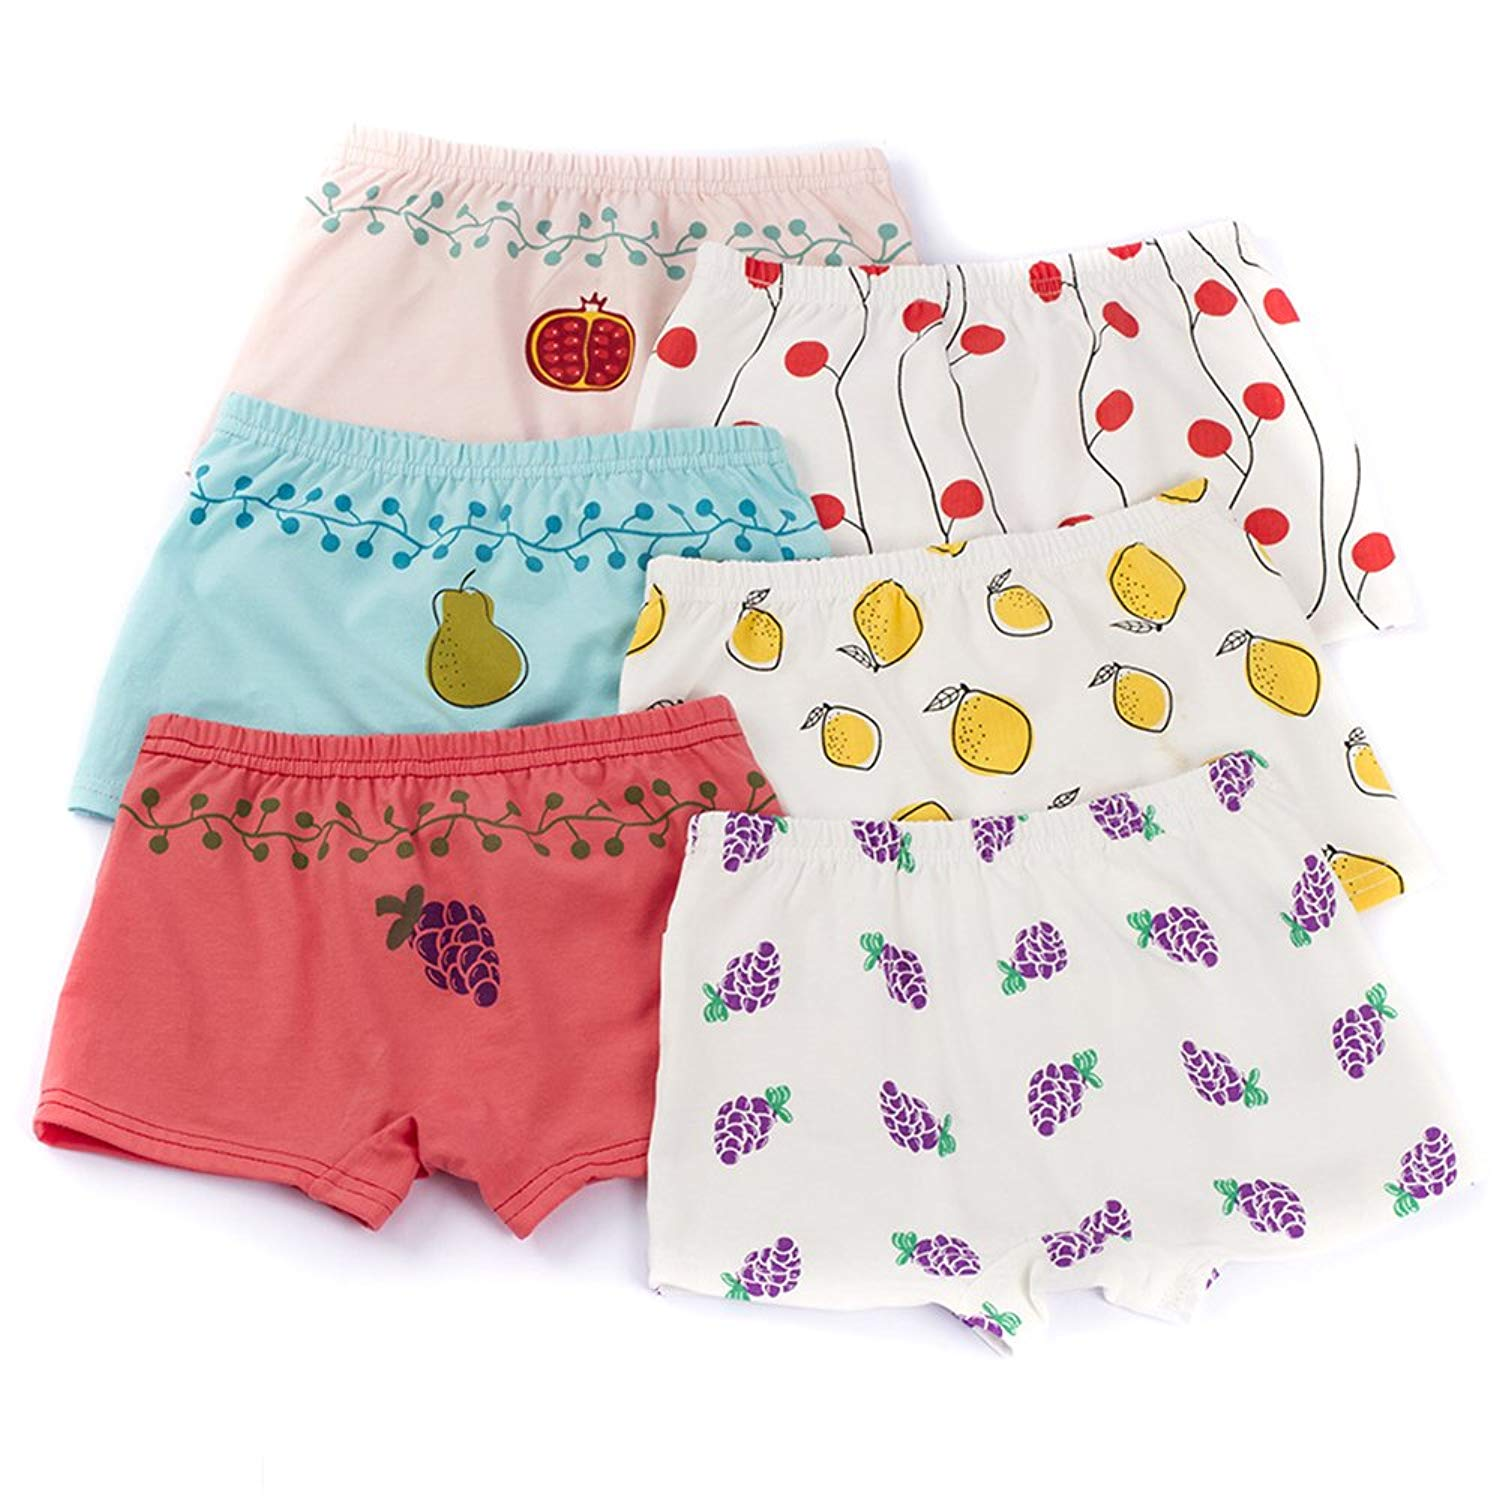 3ebf0e8c99f7 Get Quotations · U0U 6 Pack Little Girls' Hipster Panties Kids Girls  Hipster Underwear Soft Cotton Briefs For